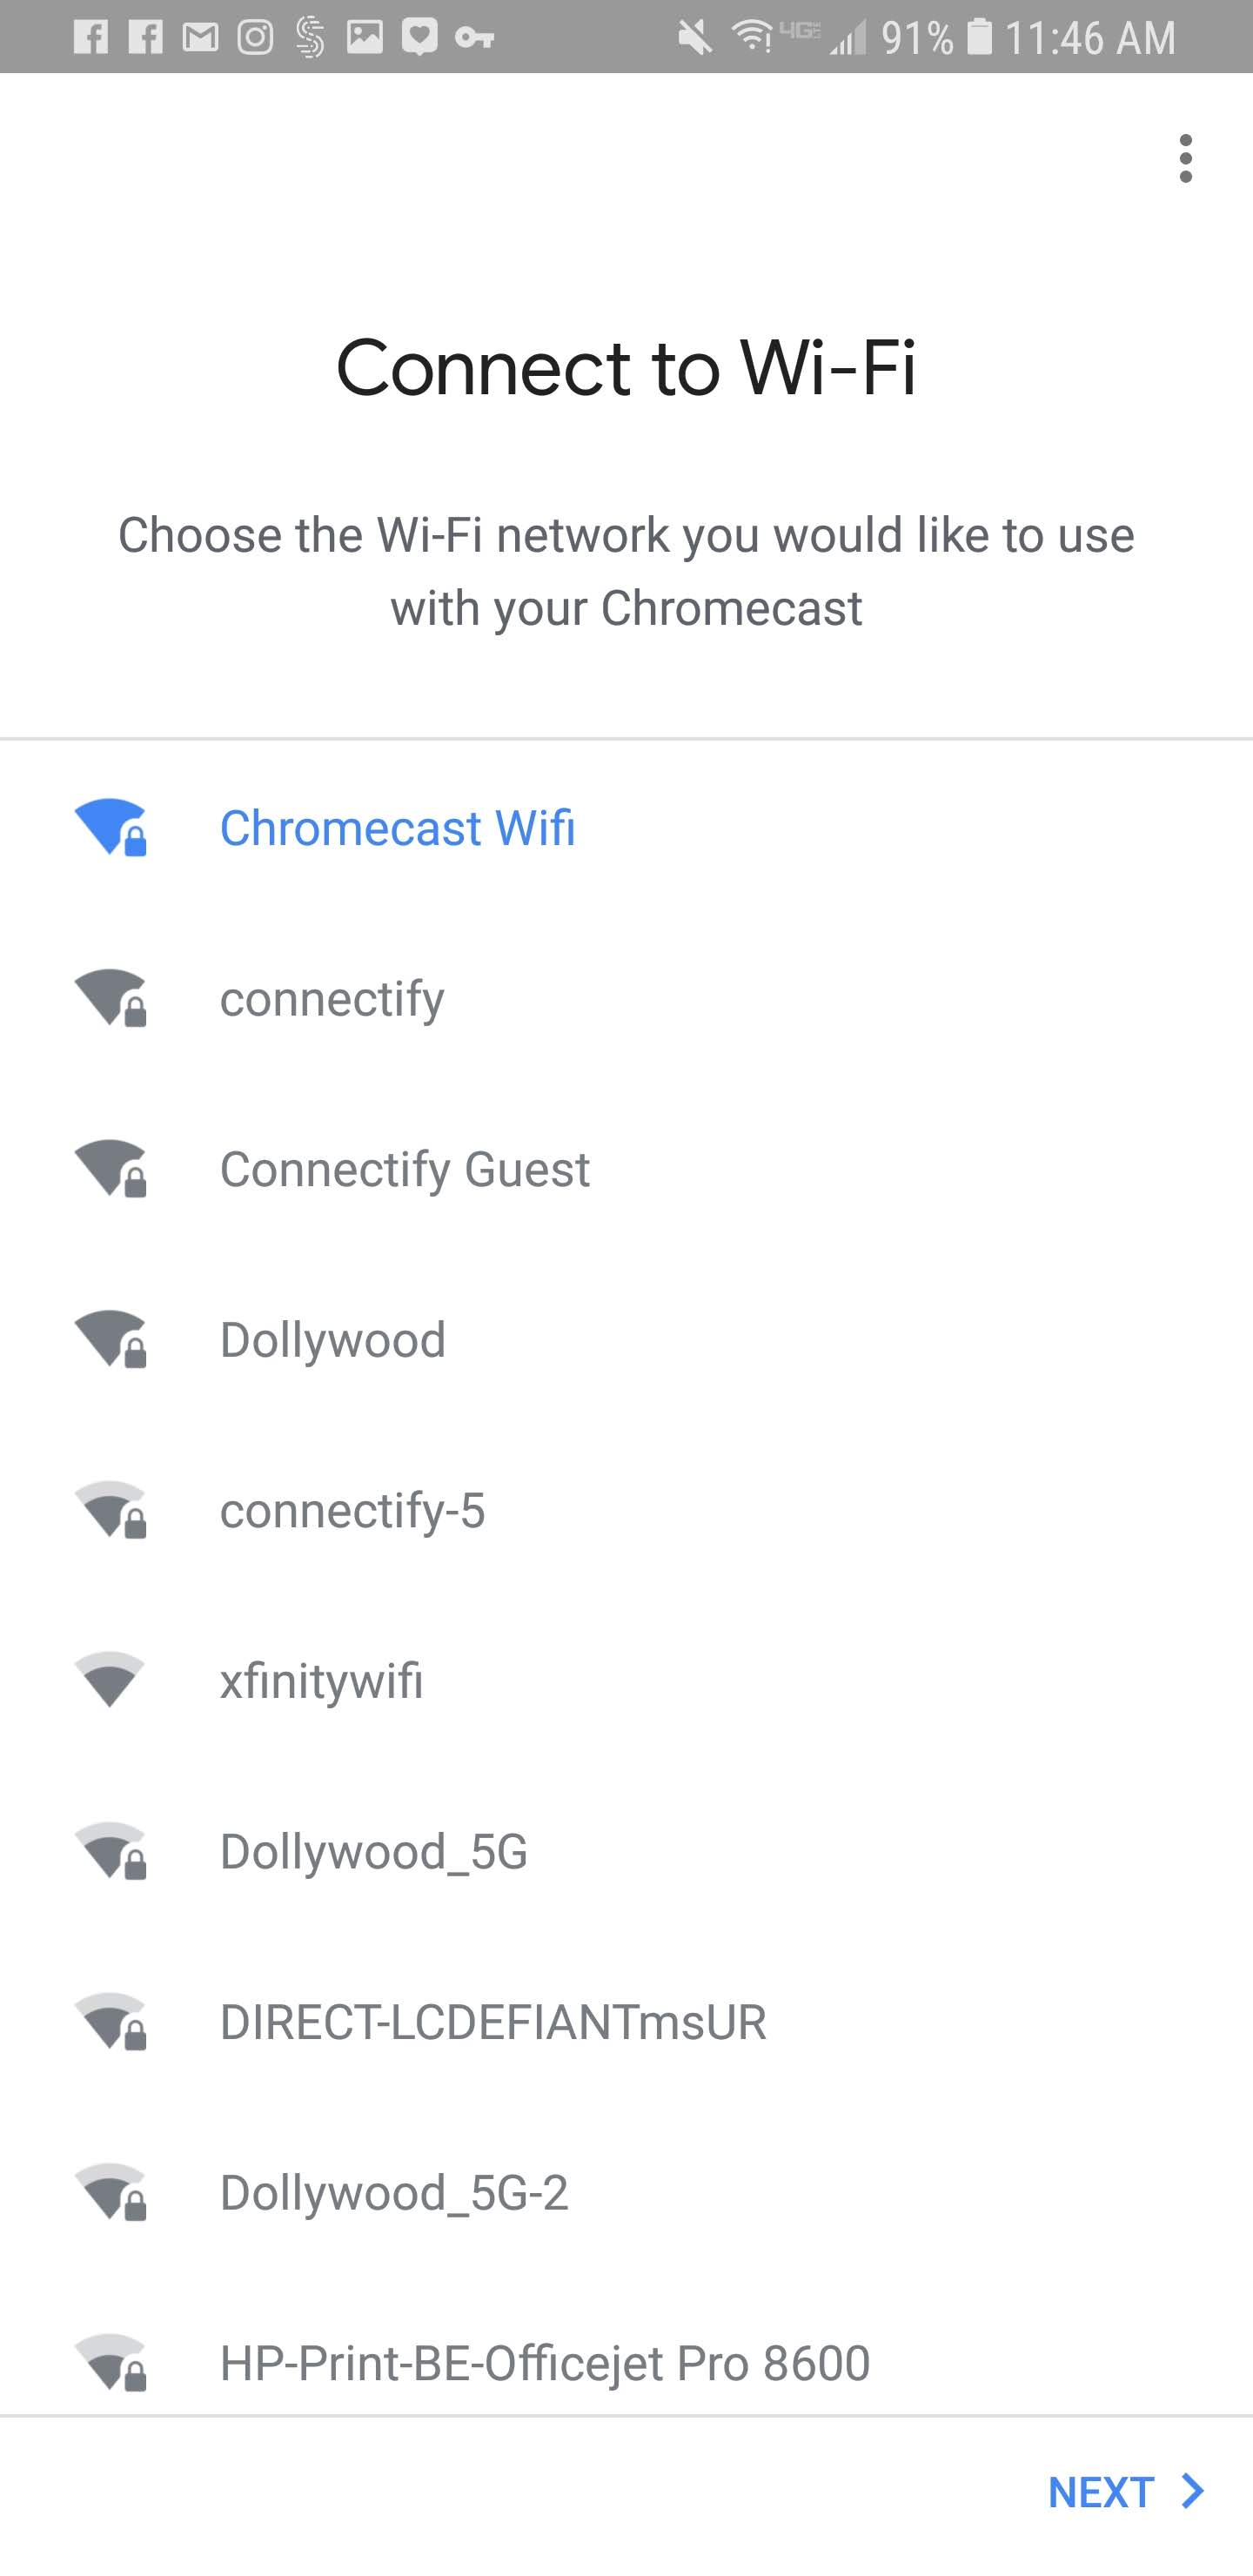 How to Connect a Chromecast to Connectify Hotspot - Connectify